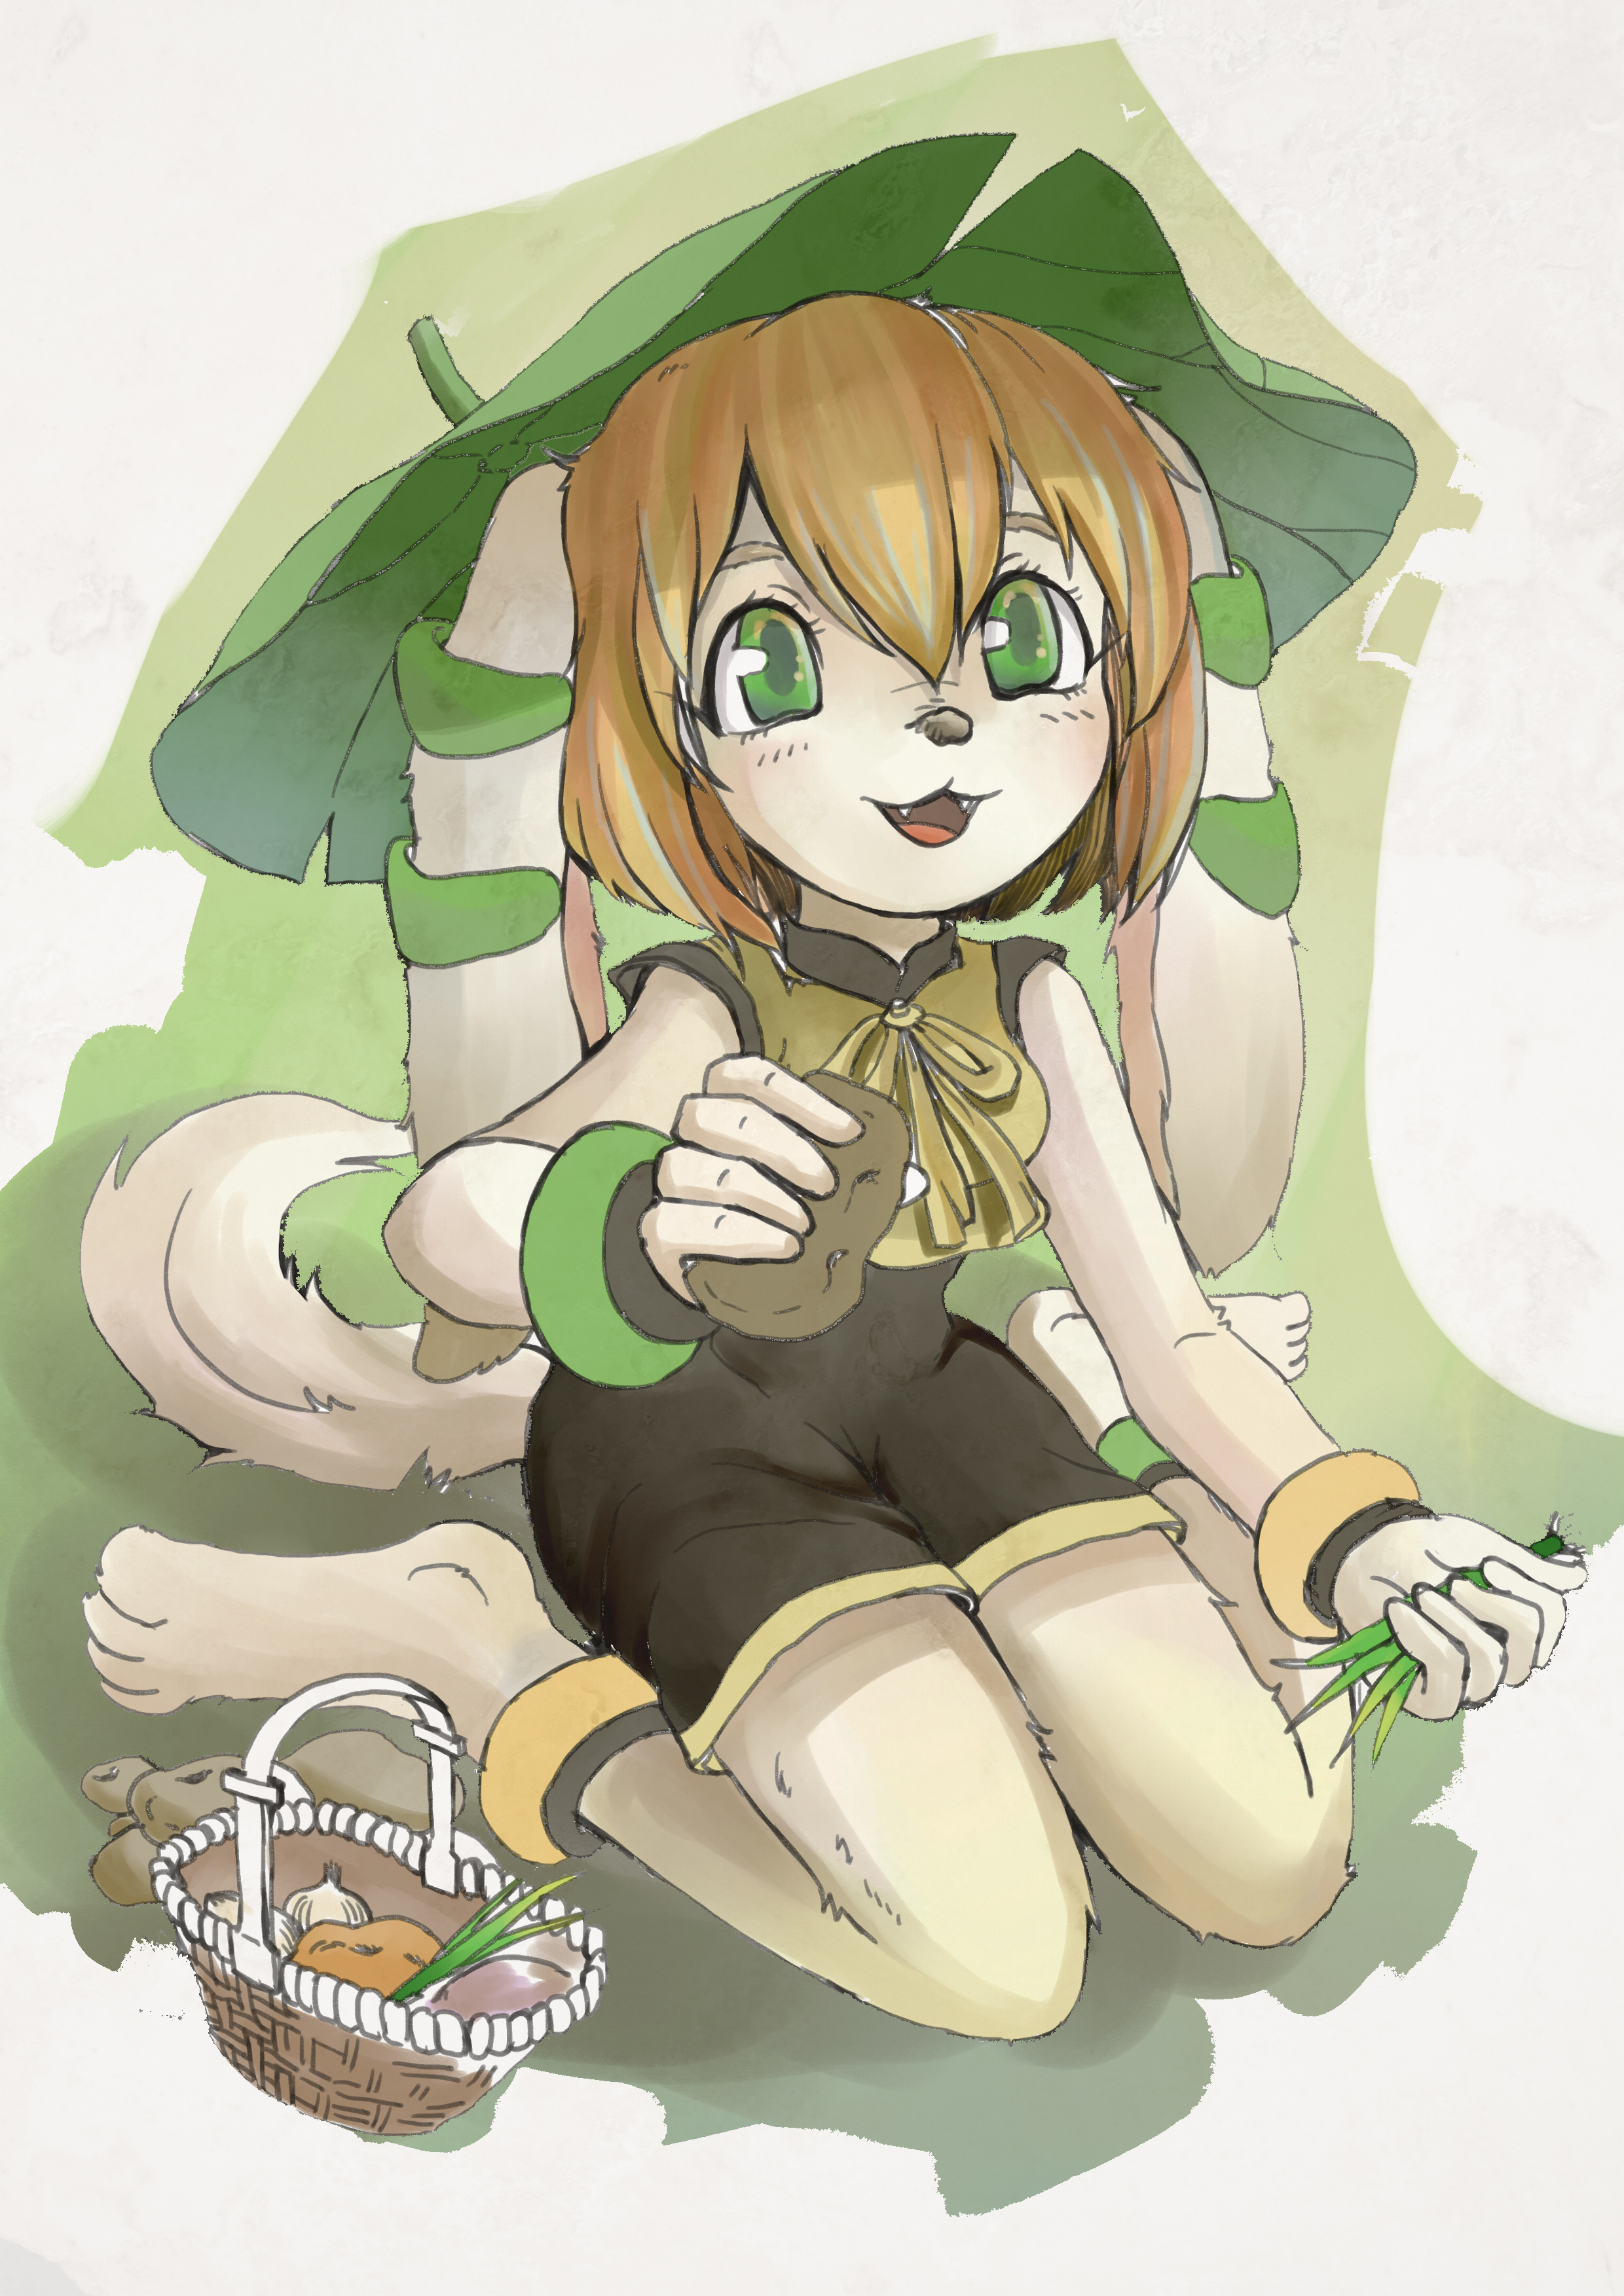 e926 anthro barefoot basket basset_hound black_nose canine clothed clothing dog female food freedom_planet freedom_planet_2 fur hair mammal milla_basset nikoyosan open_mouth orange_hair simple_background solo tan_fur video_games